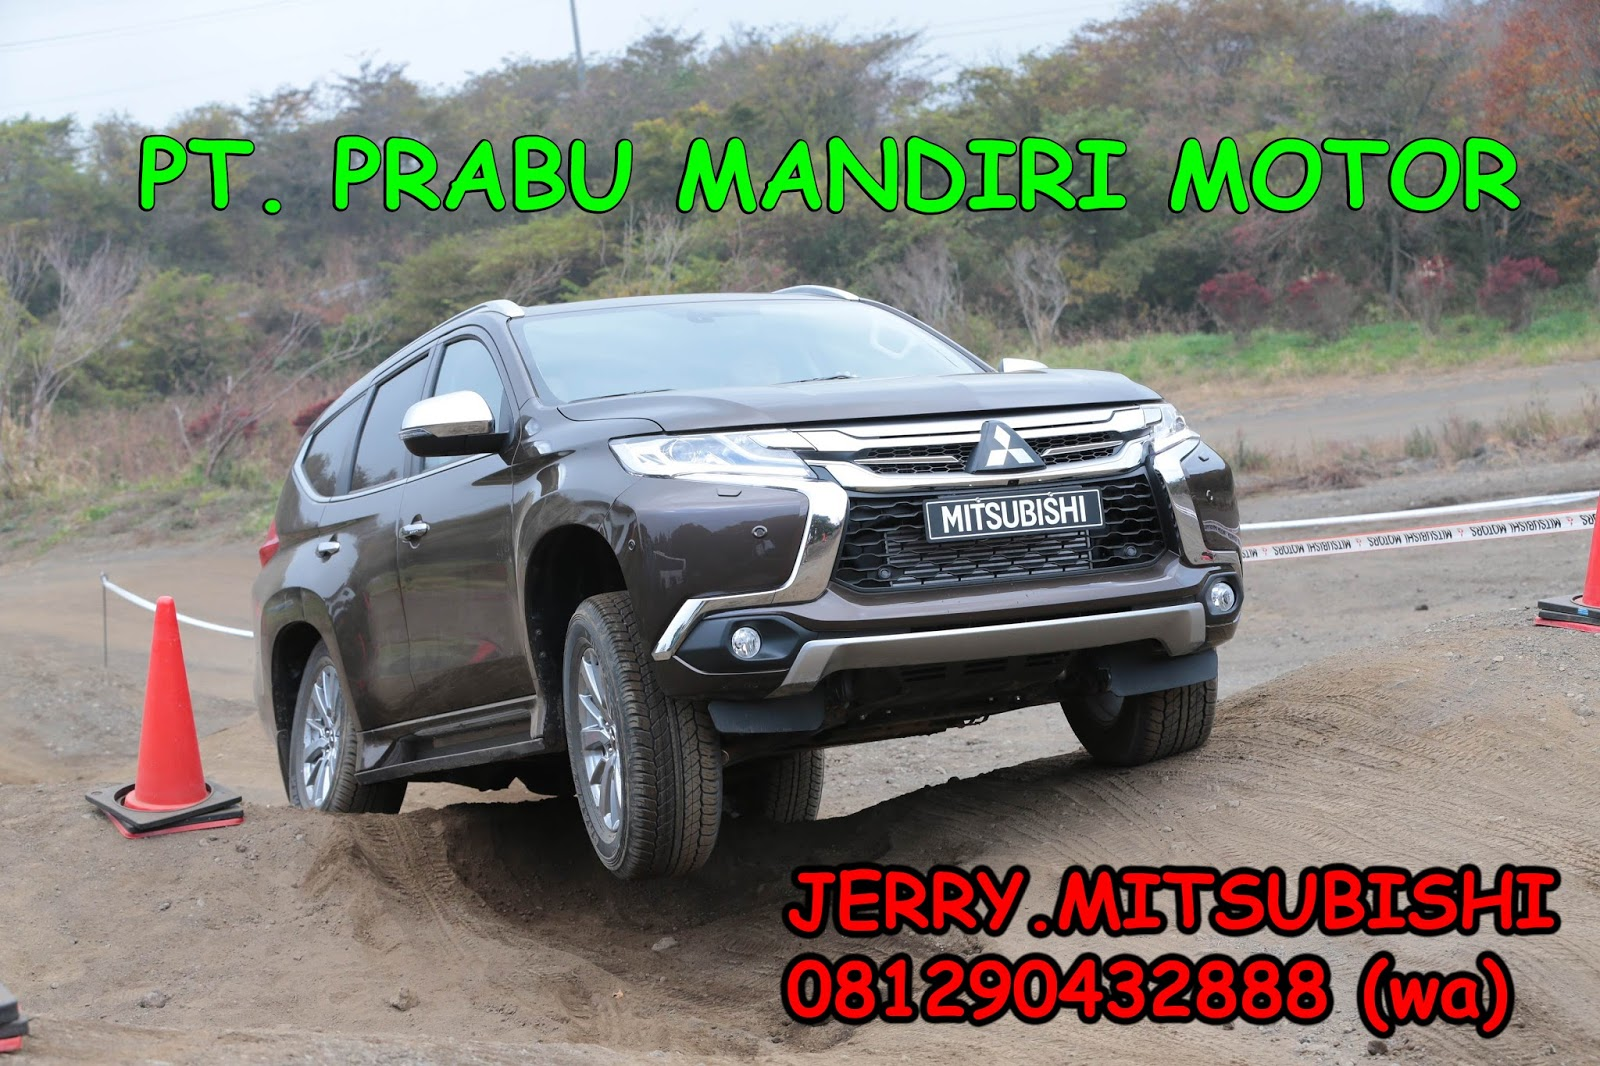 Cash Kredit Mitsubishi Pajero Baru 081290432888 Agustus 2016 Talang Air Door Visor T 120 Ss Injection High Quality Bonus All New Sport Dp Rendah Hanya 80 Jutaan